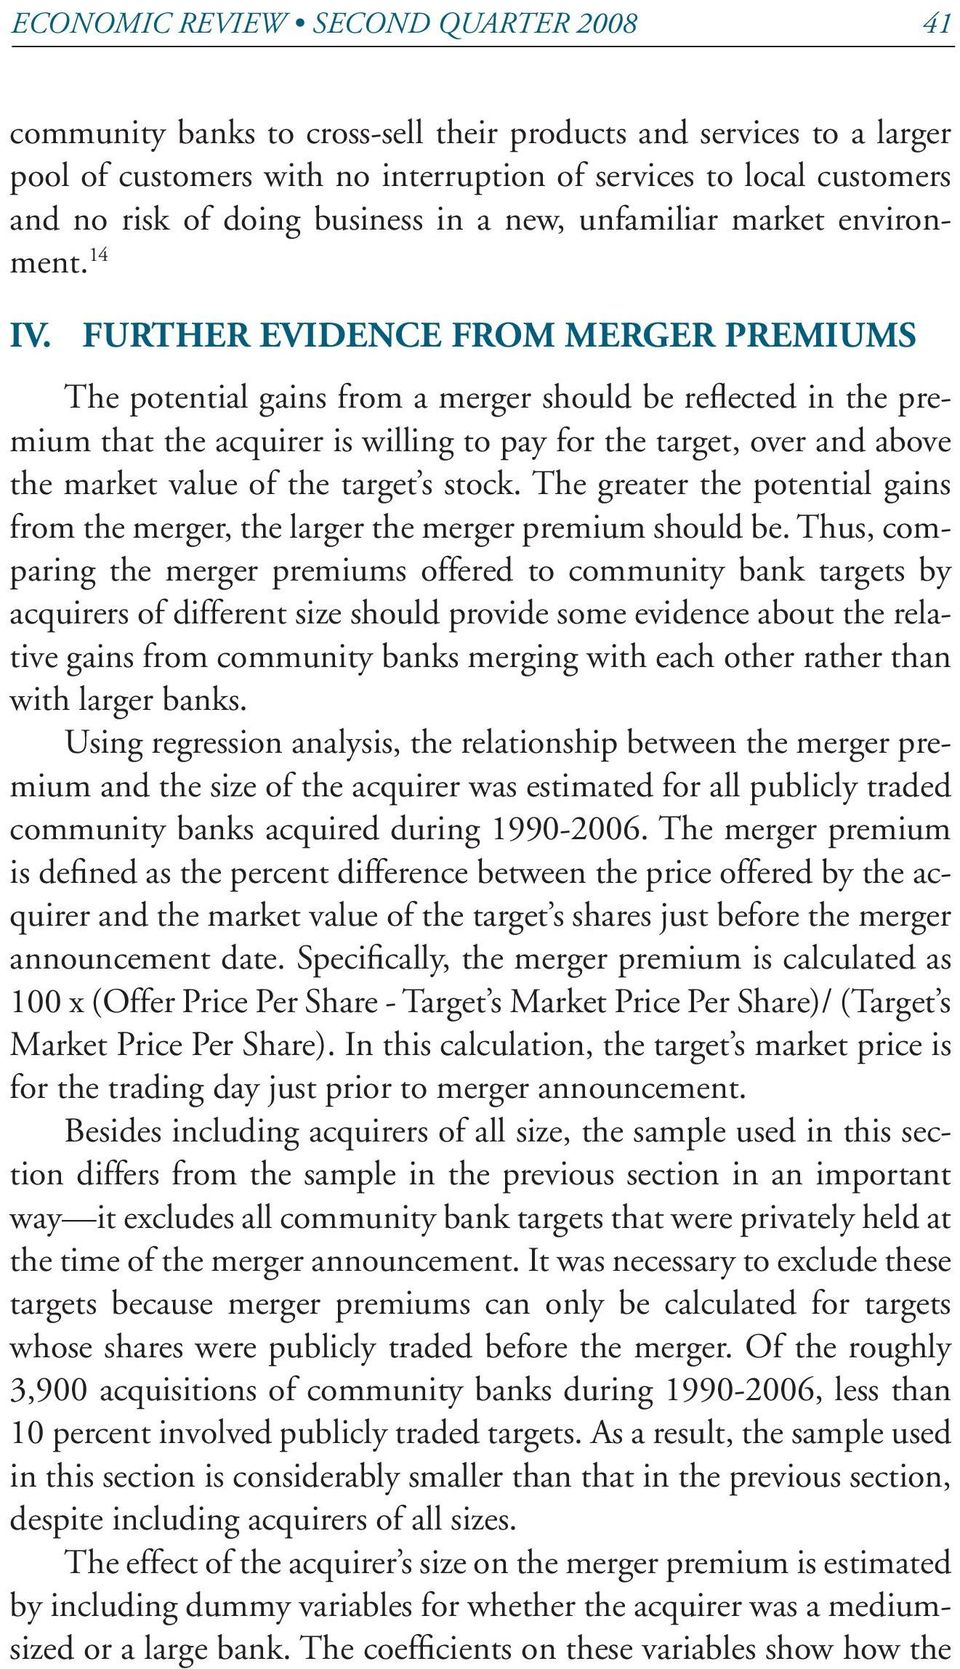 Further Evidence from Merger Premiums The potential gains from a merger should be reflected in the premium that the acquirer is willing to pay for the target, over and above the market value of the